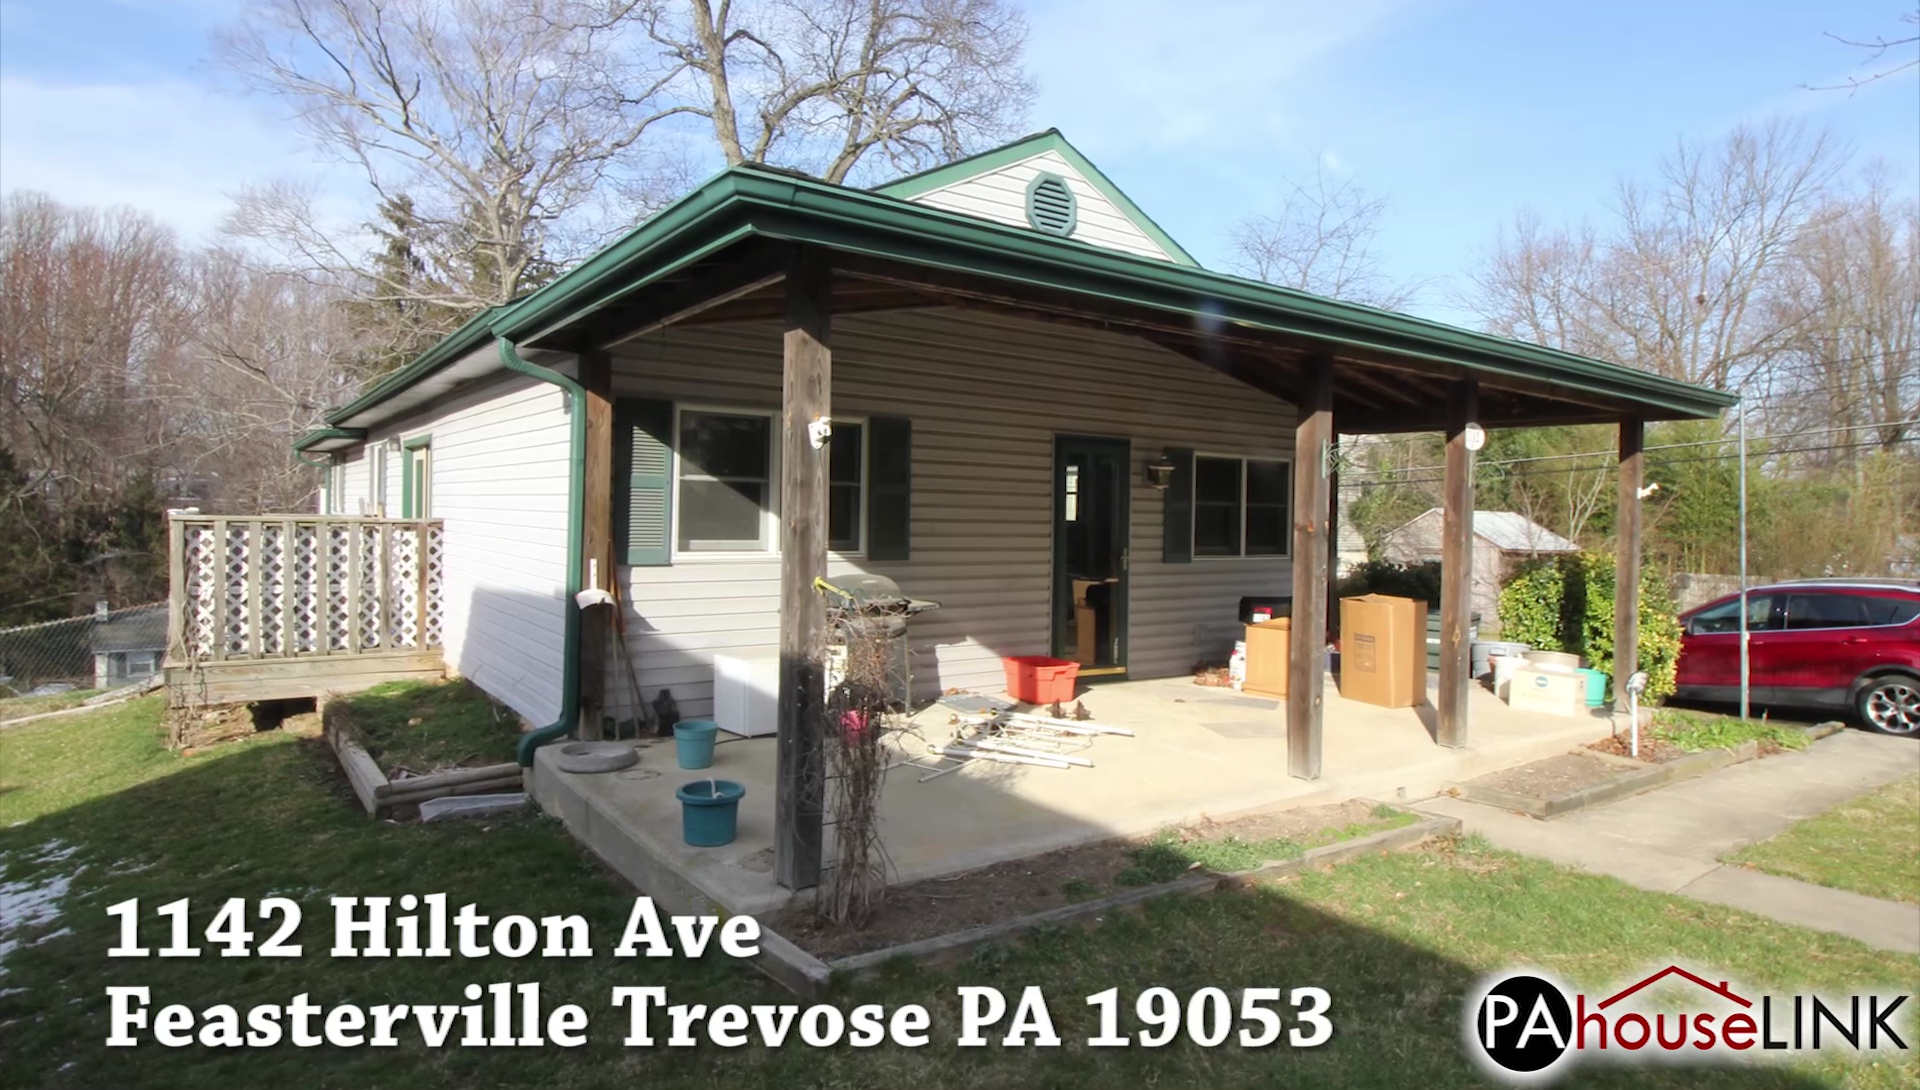 1142 Hilton Ave Feasterville Trevose PA 19053 | Coming Soon Foreclosure Properties Feasterville Trevose PA 19053